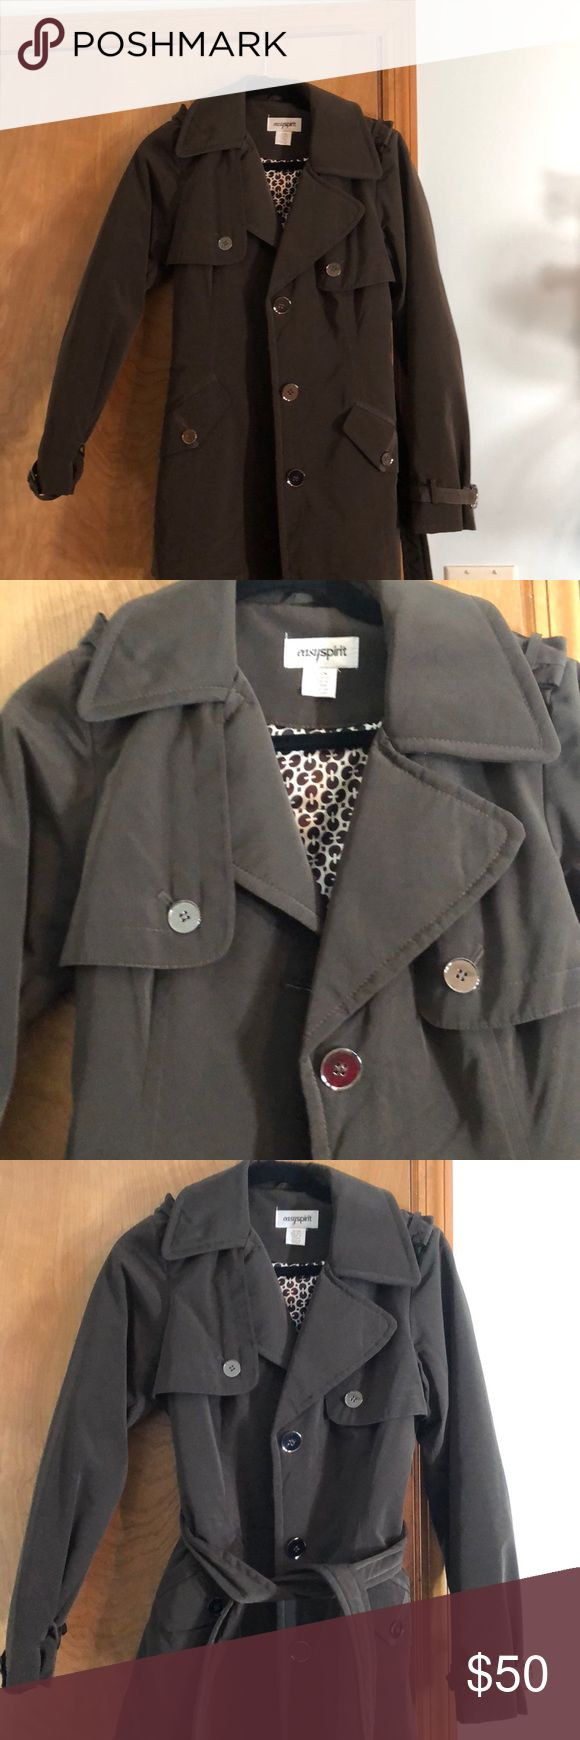 New easy spirit coat Never worn!! Dark chocolate rain coat Easy Spirit Jackets & Coats